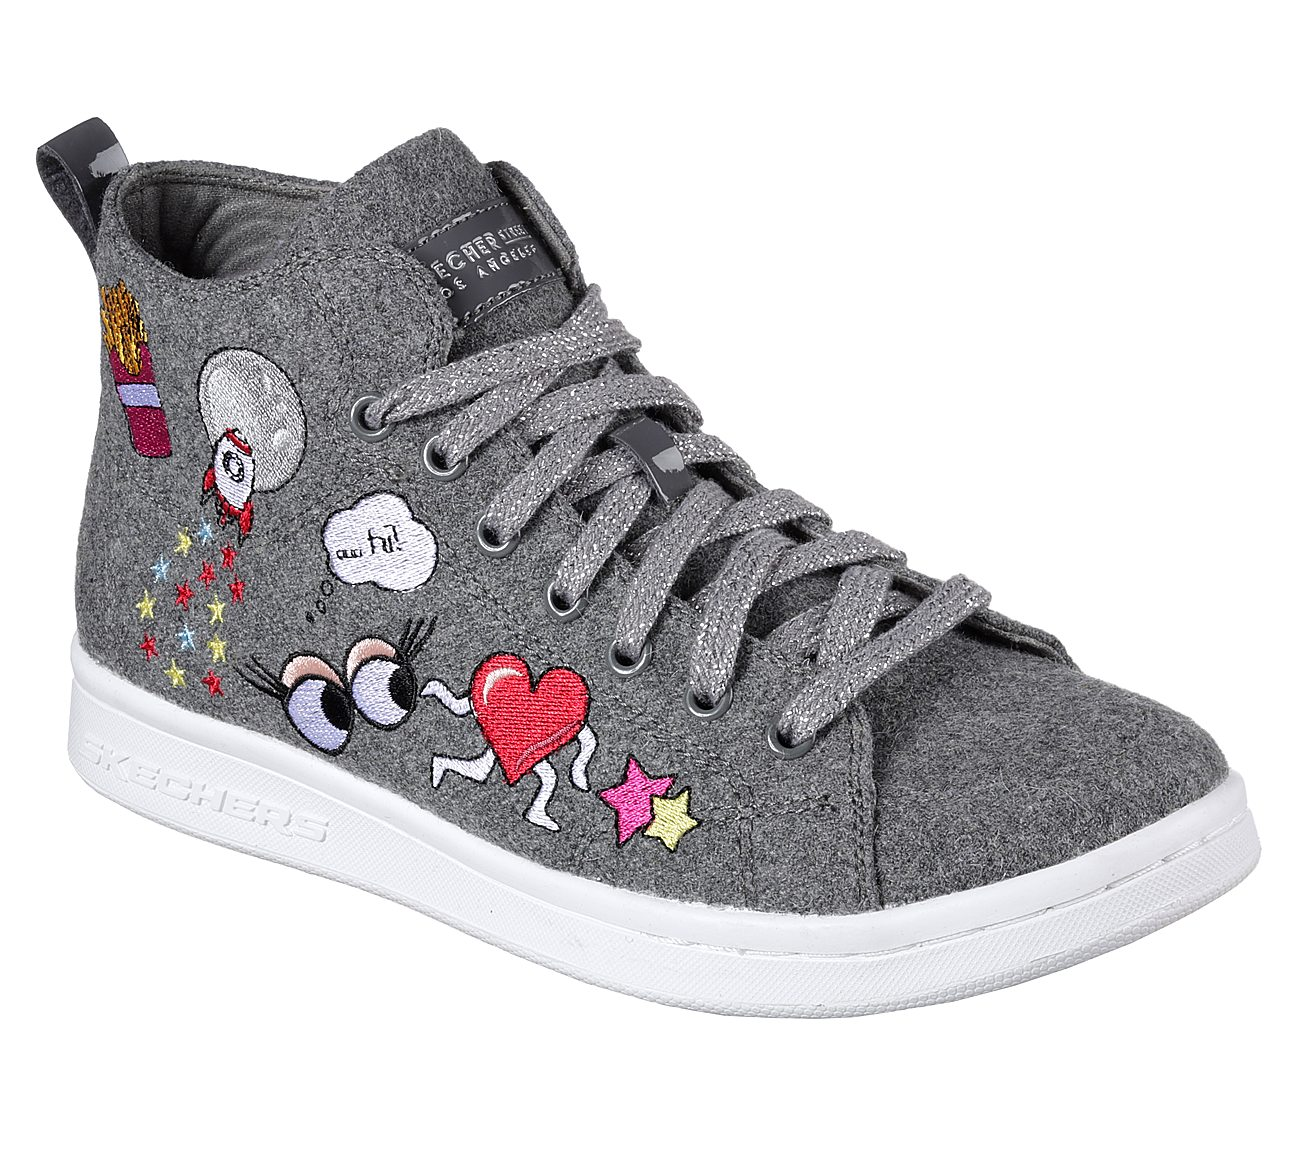 Buy SKECHERS Omne - Hi Tops SKECHER